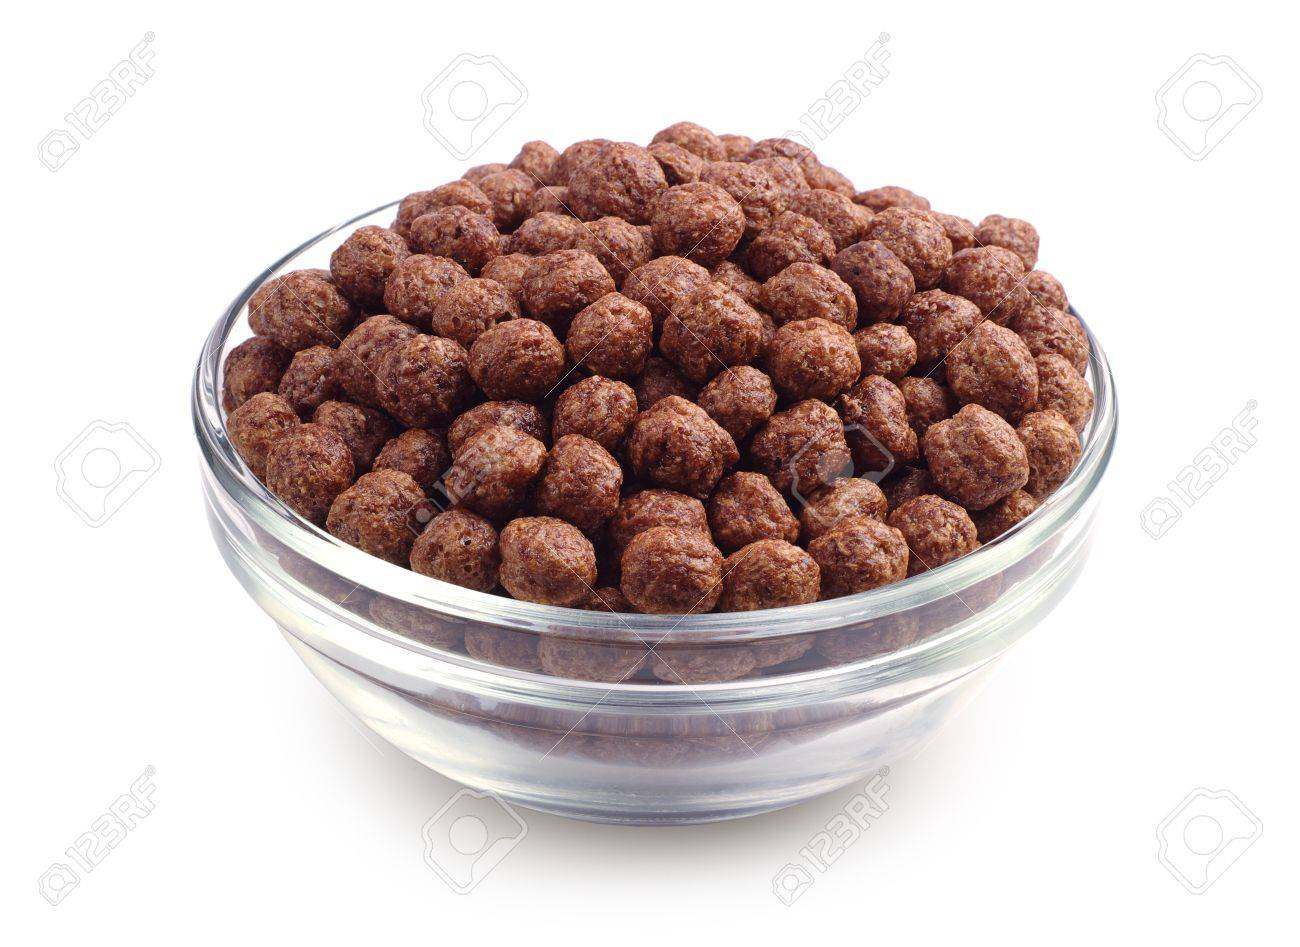 Chocolate Cereal In Glass Bowl On White Background Stock Photo ...